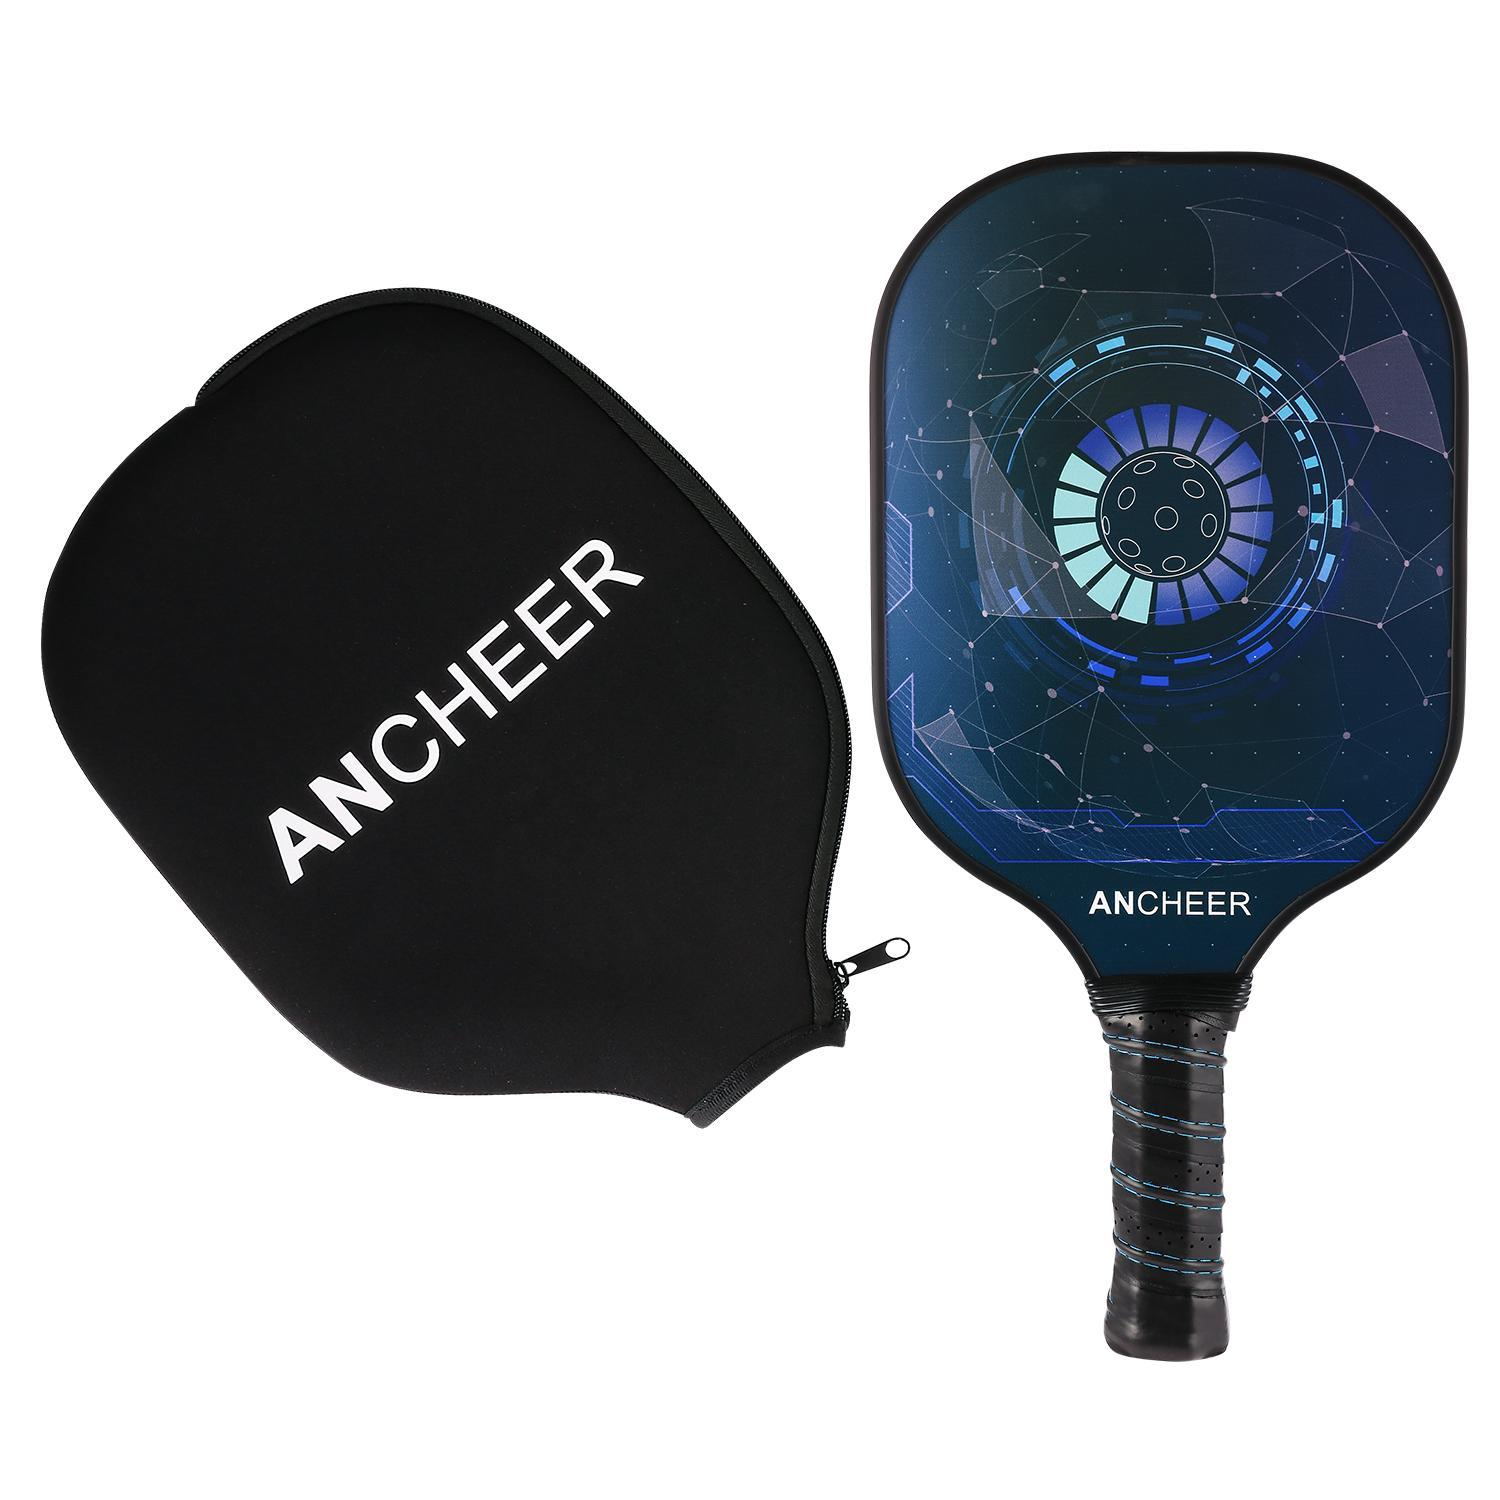 Holiday Saving!!Portable&Unique Design Professional  Pickleball Paddle Graphite Carbon Fiber Pickleball Racket PP Polymer Honeycomb Composite Core Pickleball Paddle Set MSARTS